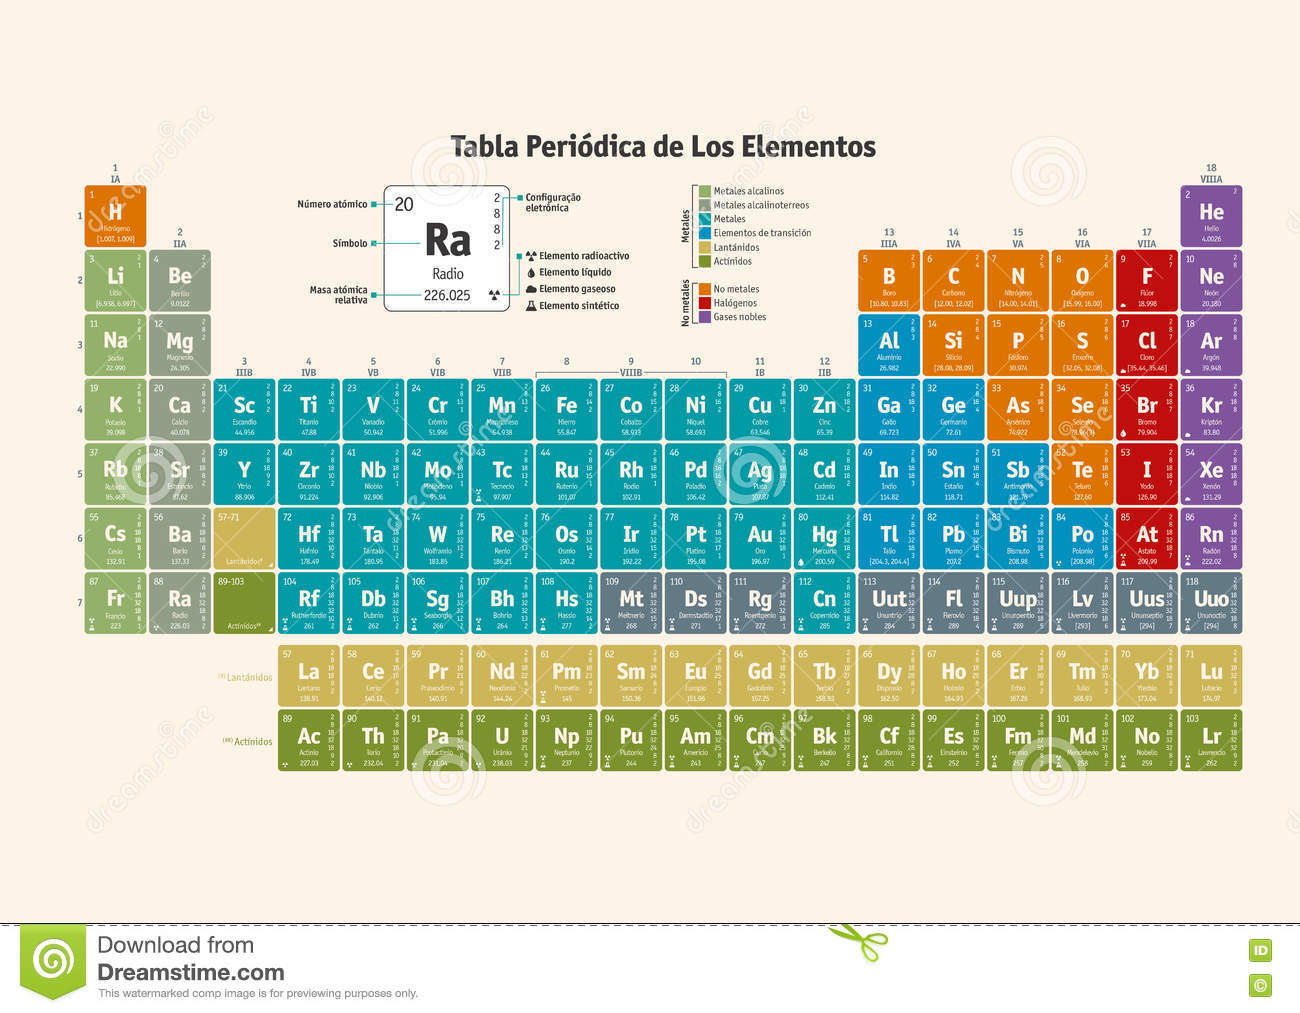 Periodic table of the chemical elements spanish version stock periodic table of the chemical elements spanish version urtaz Choice Image